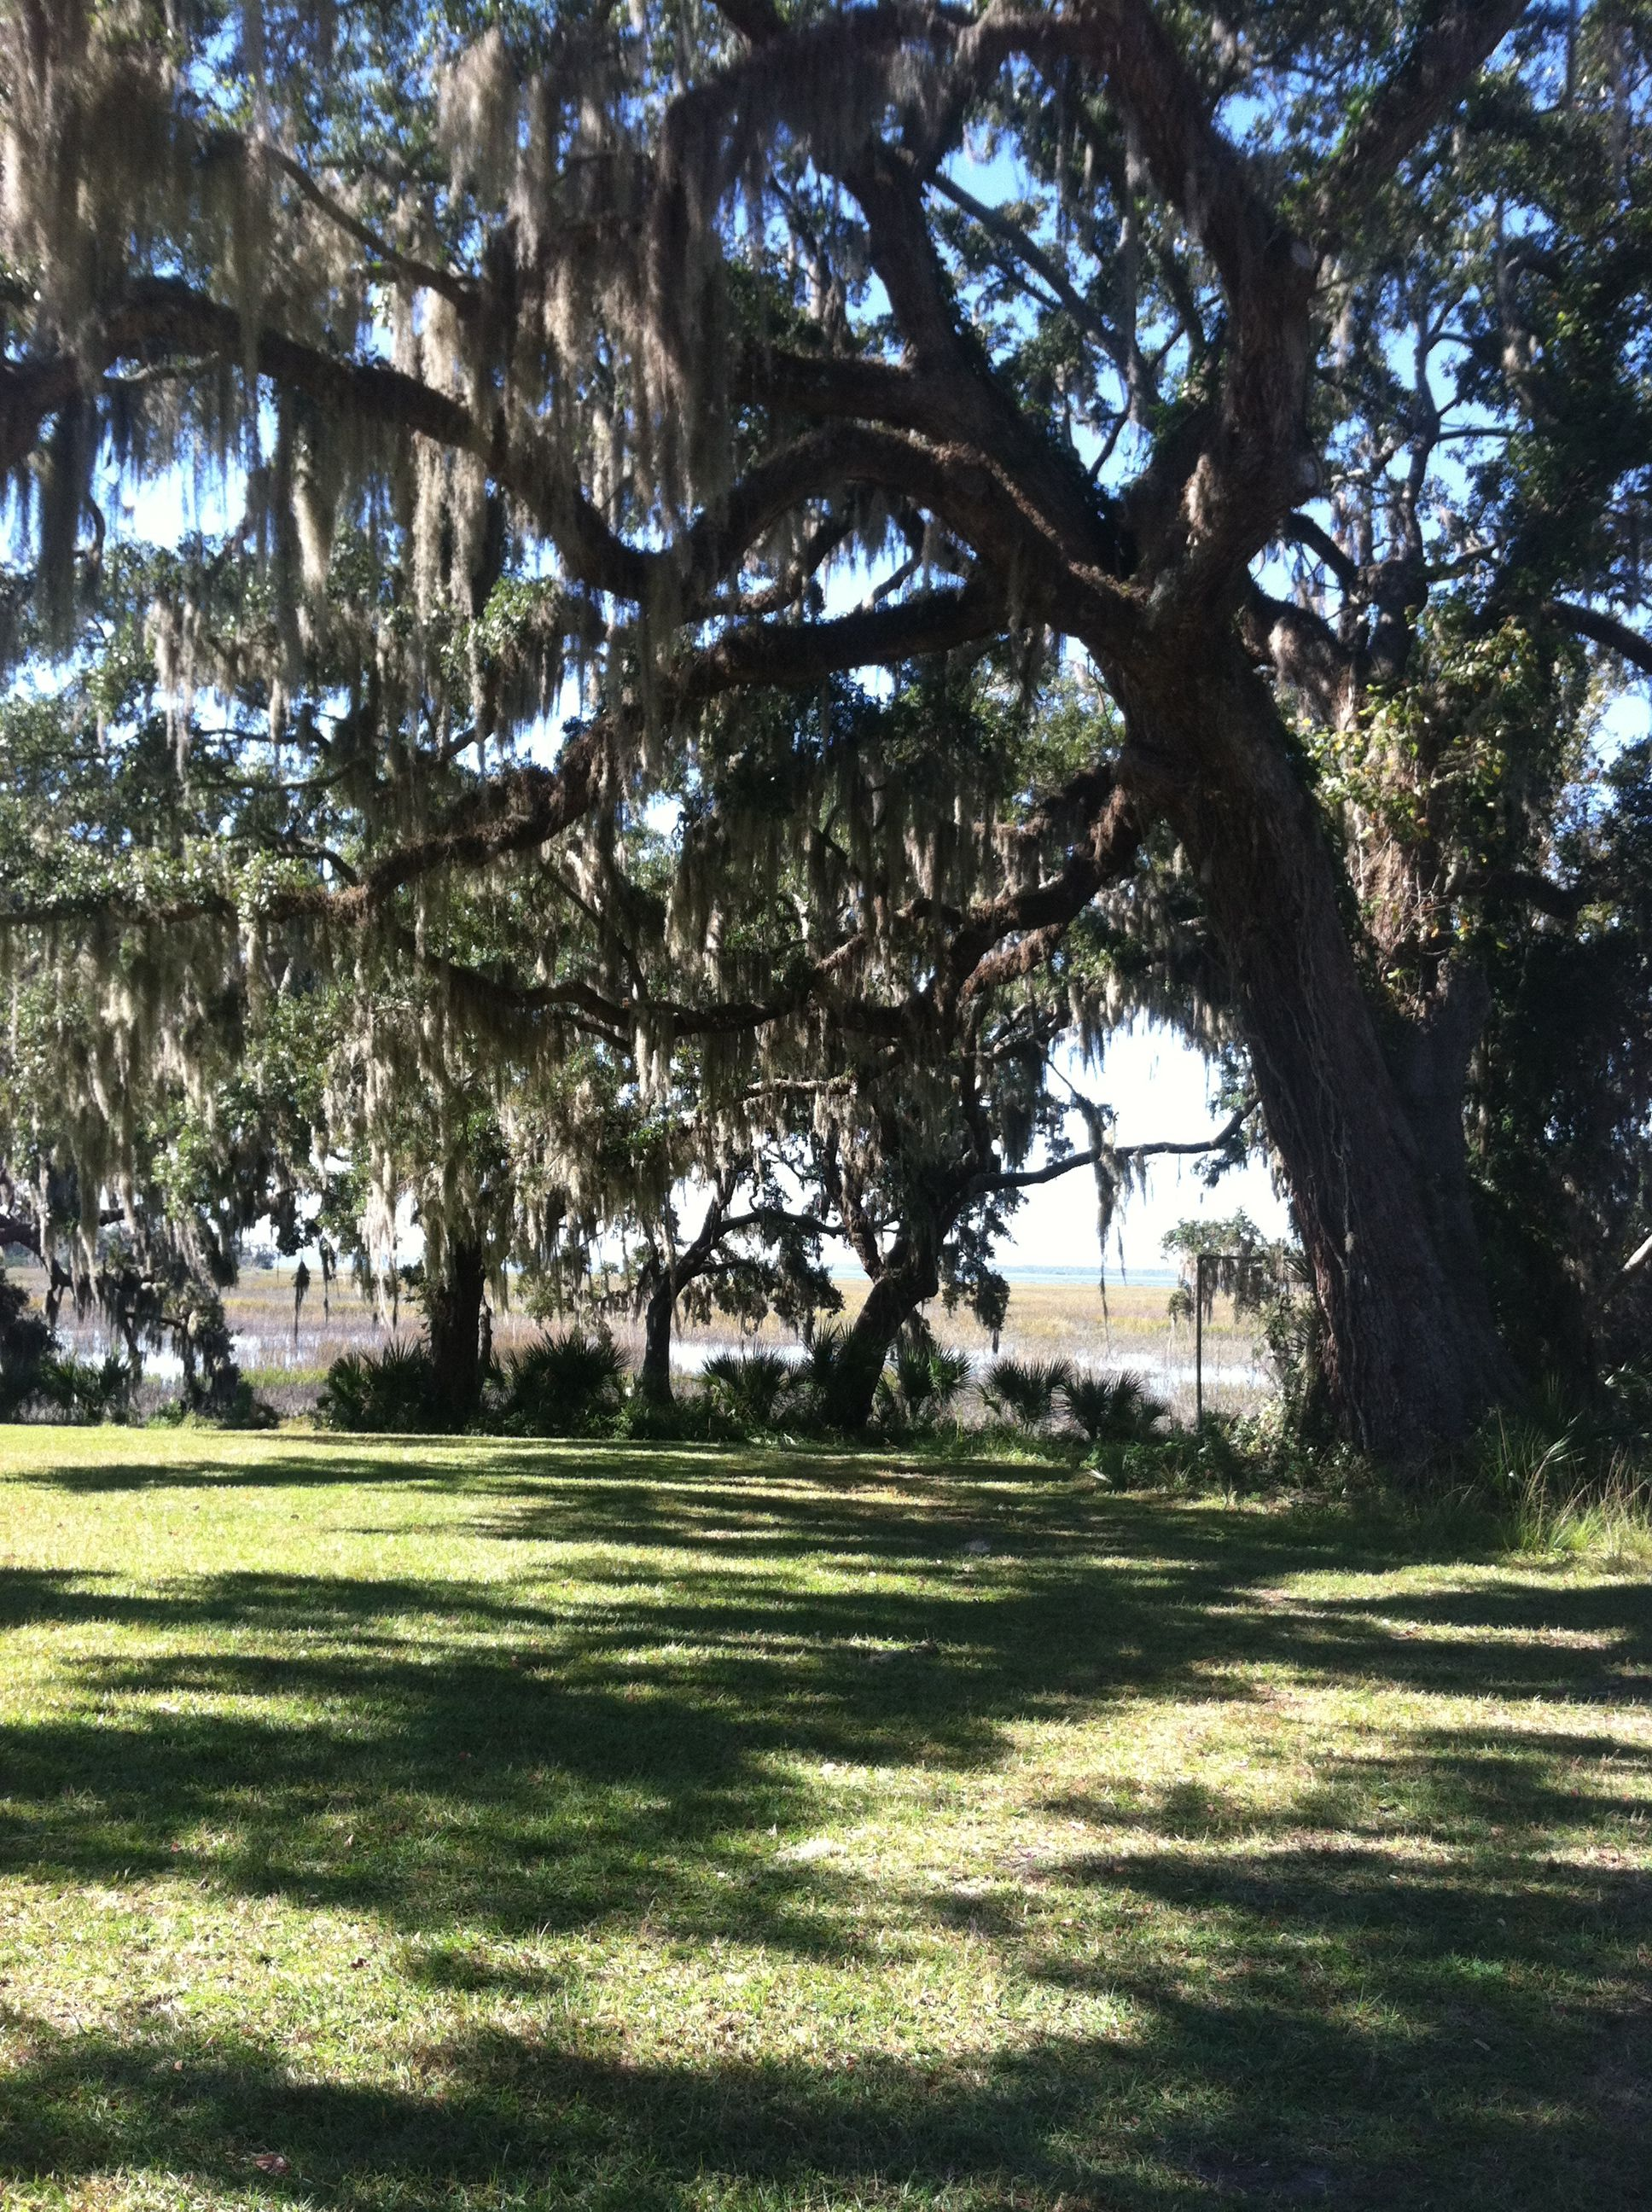 The Spanish moss and the breathtaking marsh. Come visit and experience the beauty of Beaufort, SC for yourself!